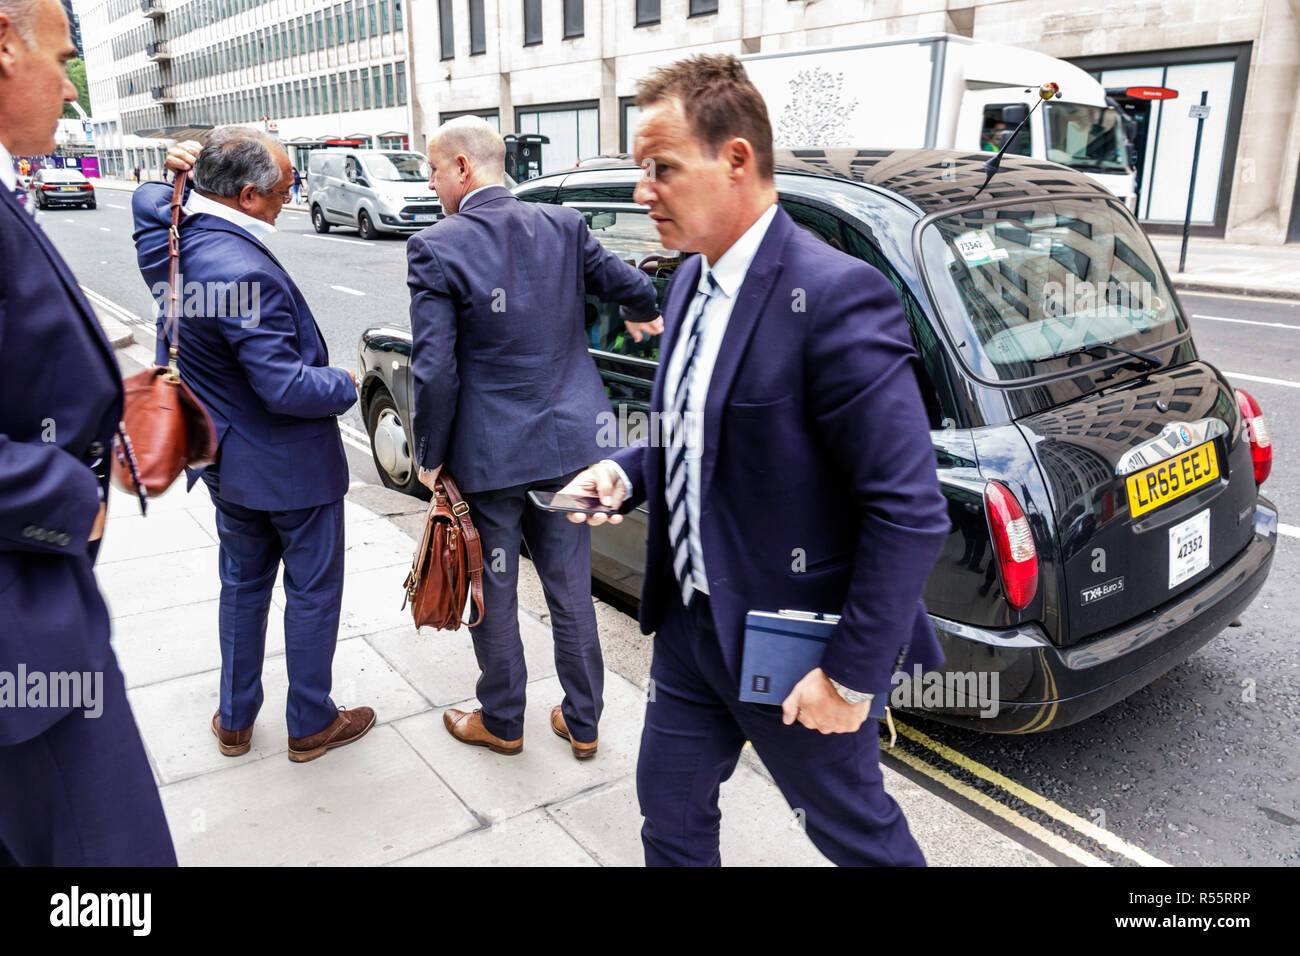 United Kingdom Great Britain England London Westminster black taxicab taxi hackney carriage man businessman dropping off - Stock Image